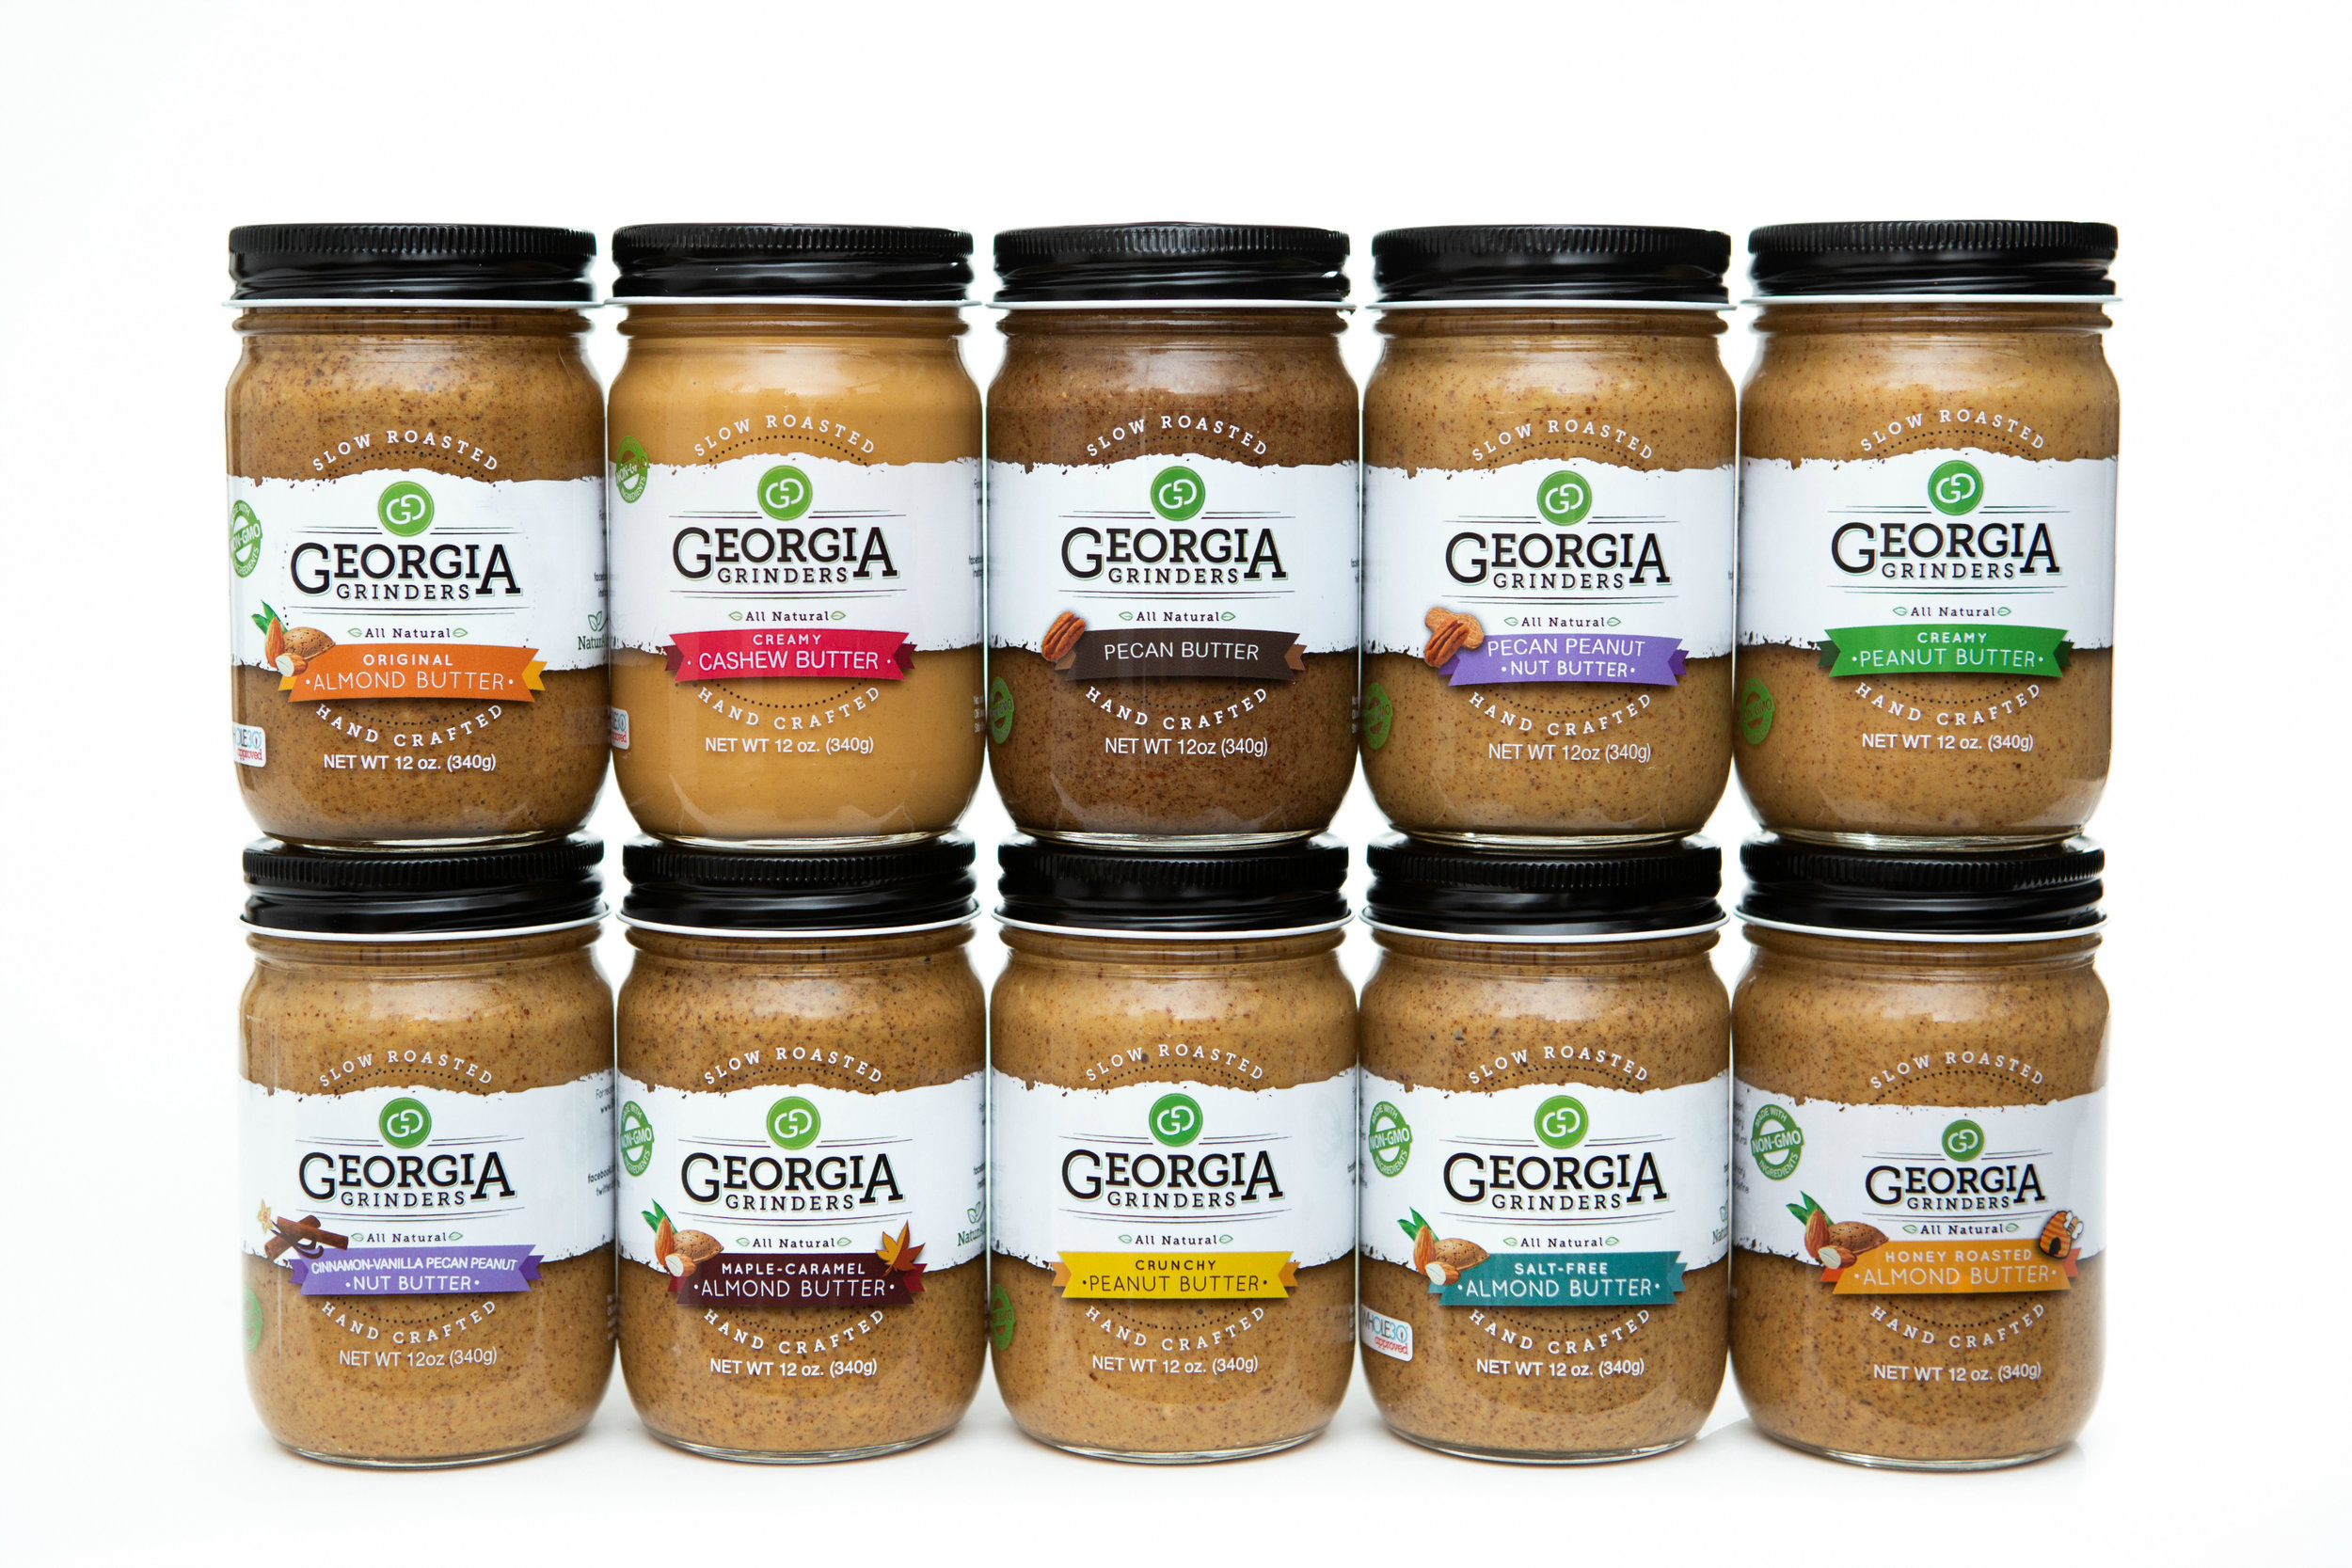 Georgia Grinders, Nut Butters, Whole 30 Snacks, Healthy Snacks, Gluten Free Nut Butters, Online Farmers Market